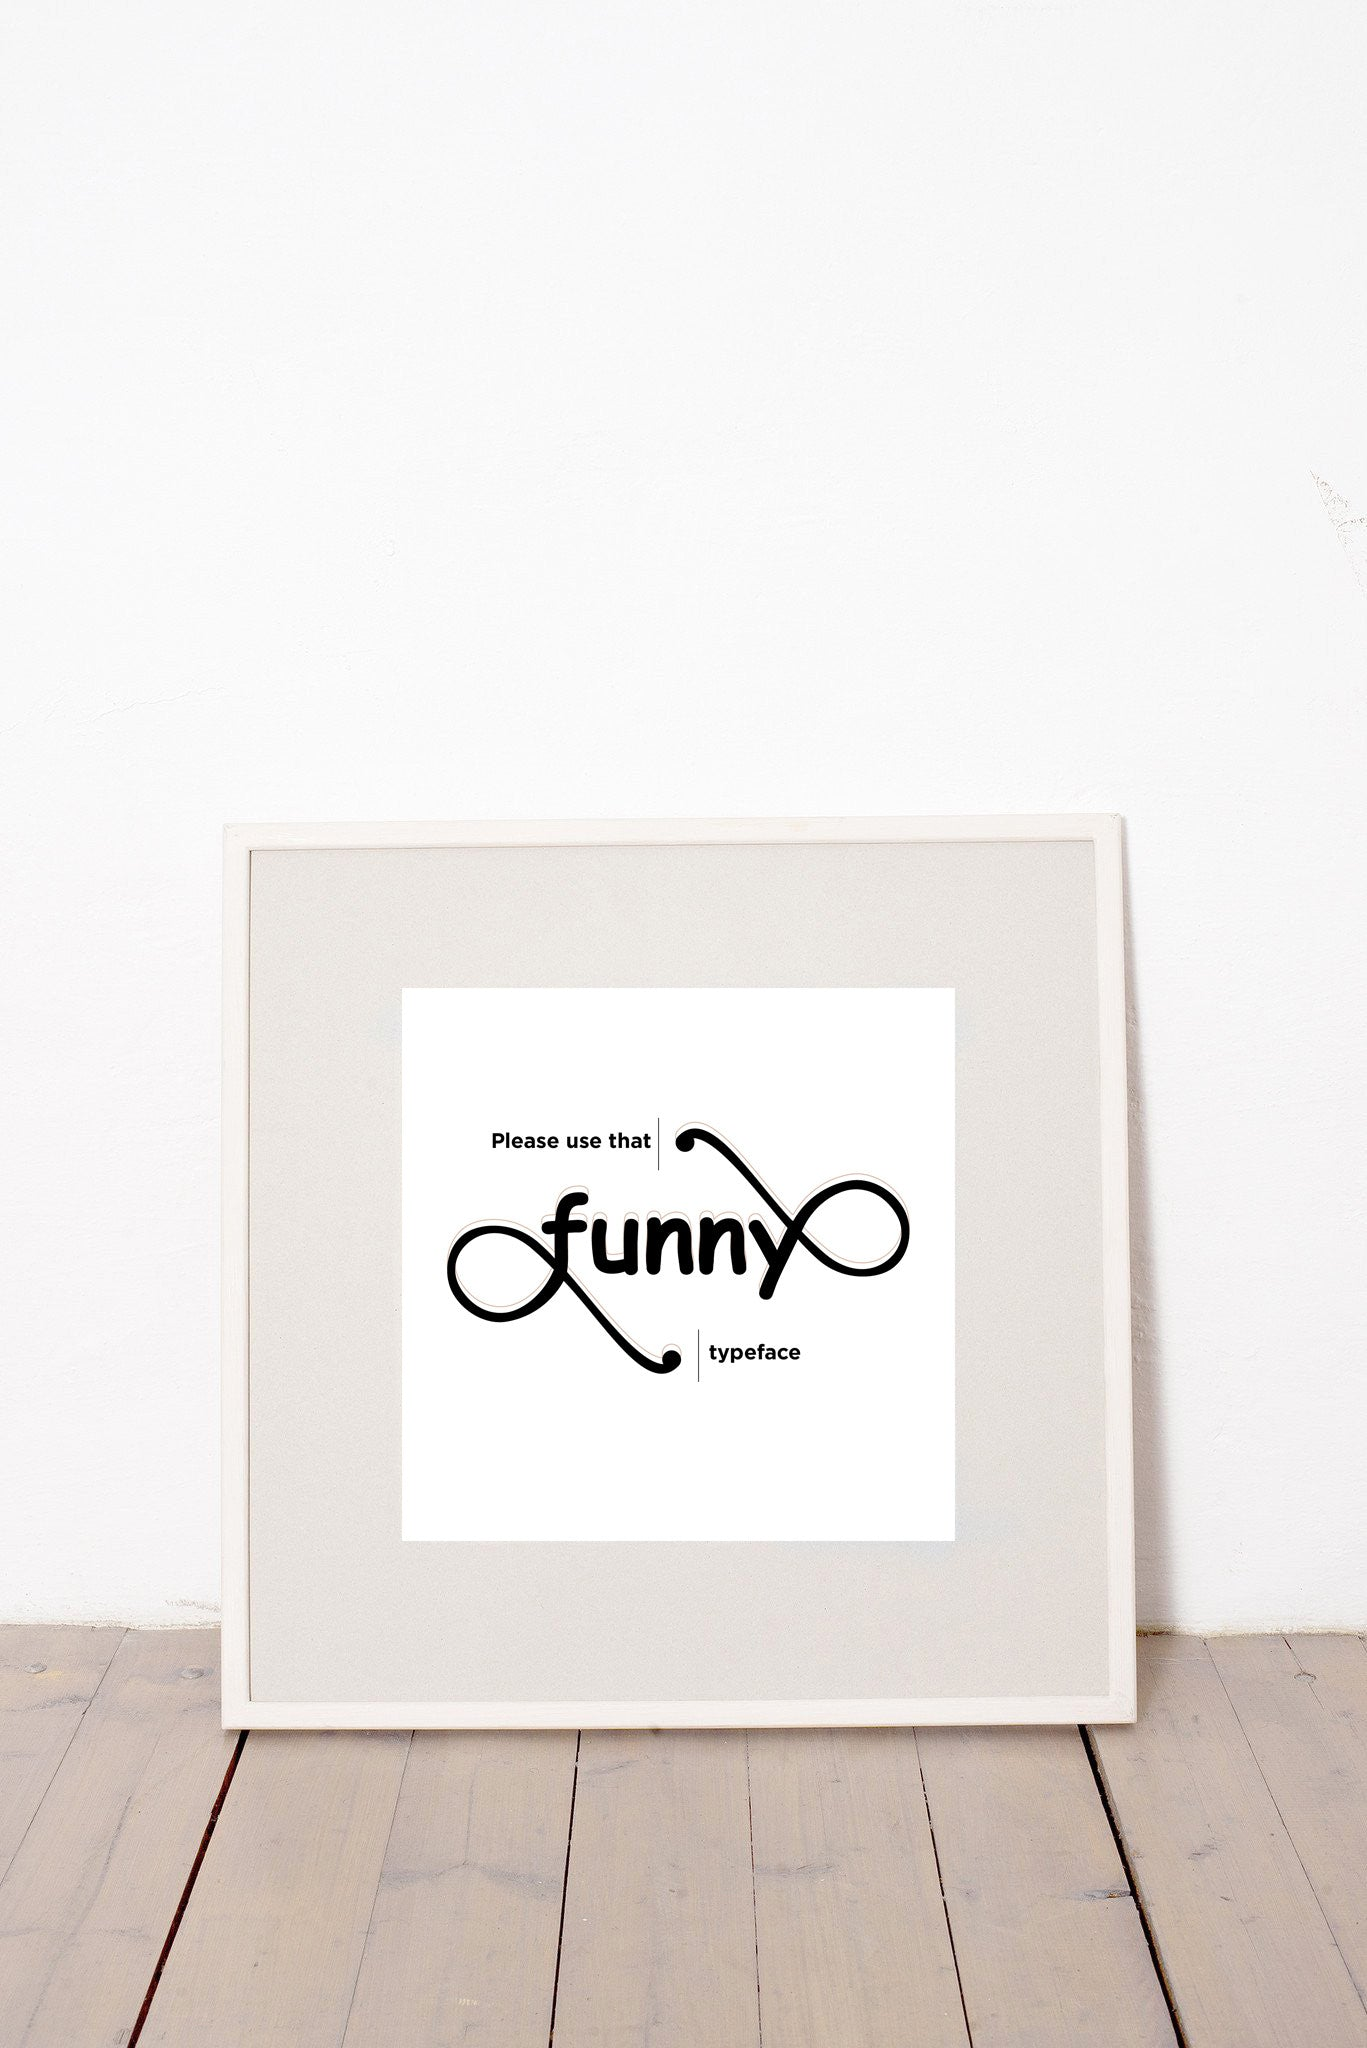 PLEASE USE THAT FUNNY TYPEFACE MARCELL PUSKÁS PUSKAAS PRINTA HAND-MADE WATER-BASED SILKSCREEN PRINT ON RECYCLED PAPER